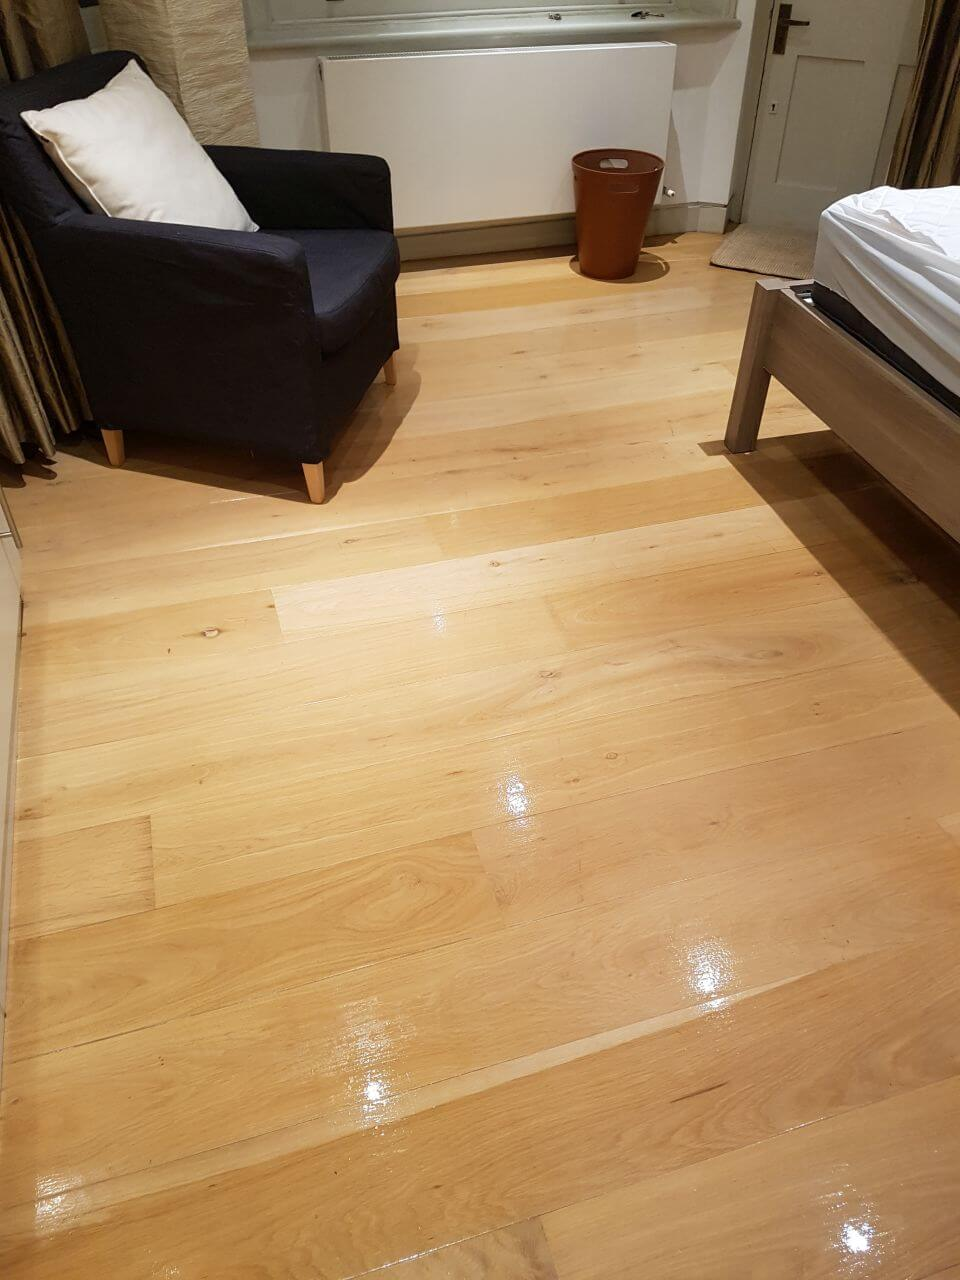 cleaning services Tottenham Hale